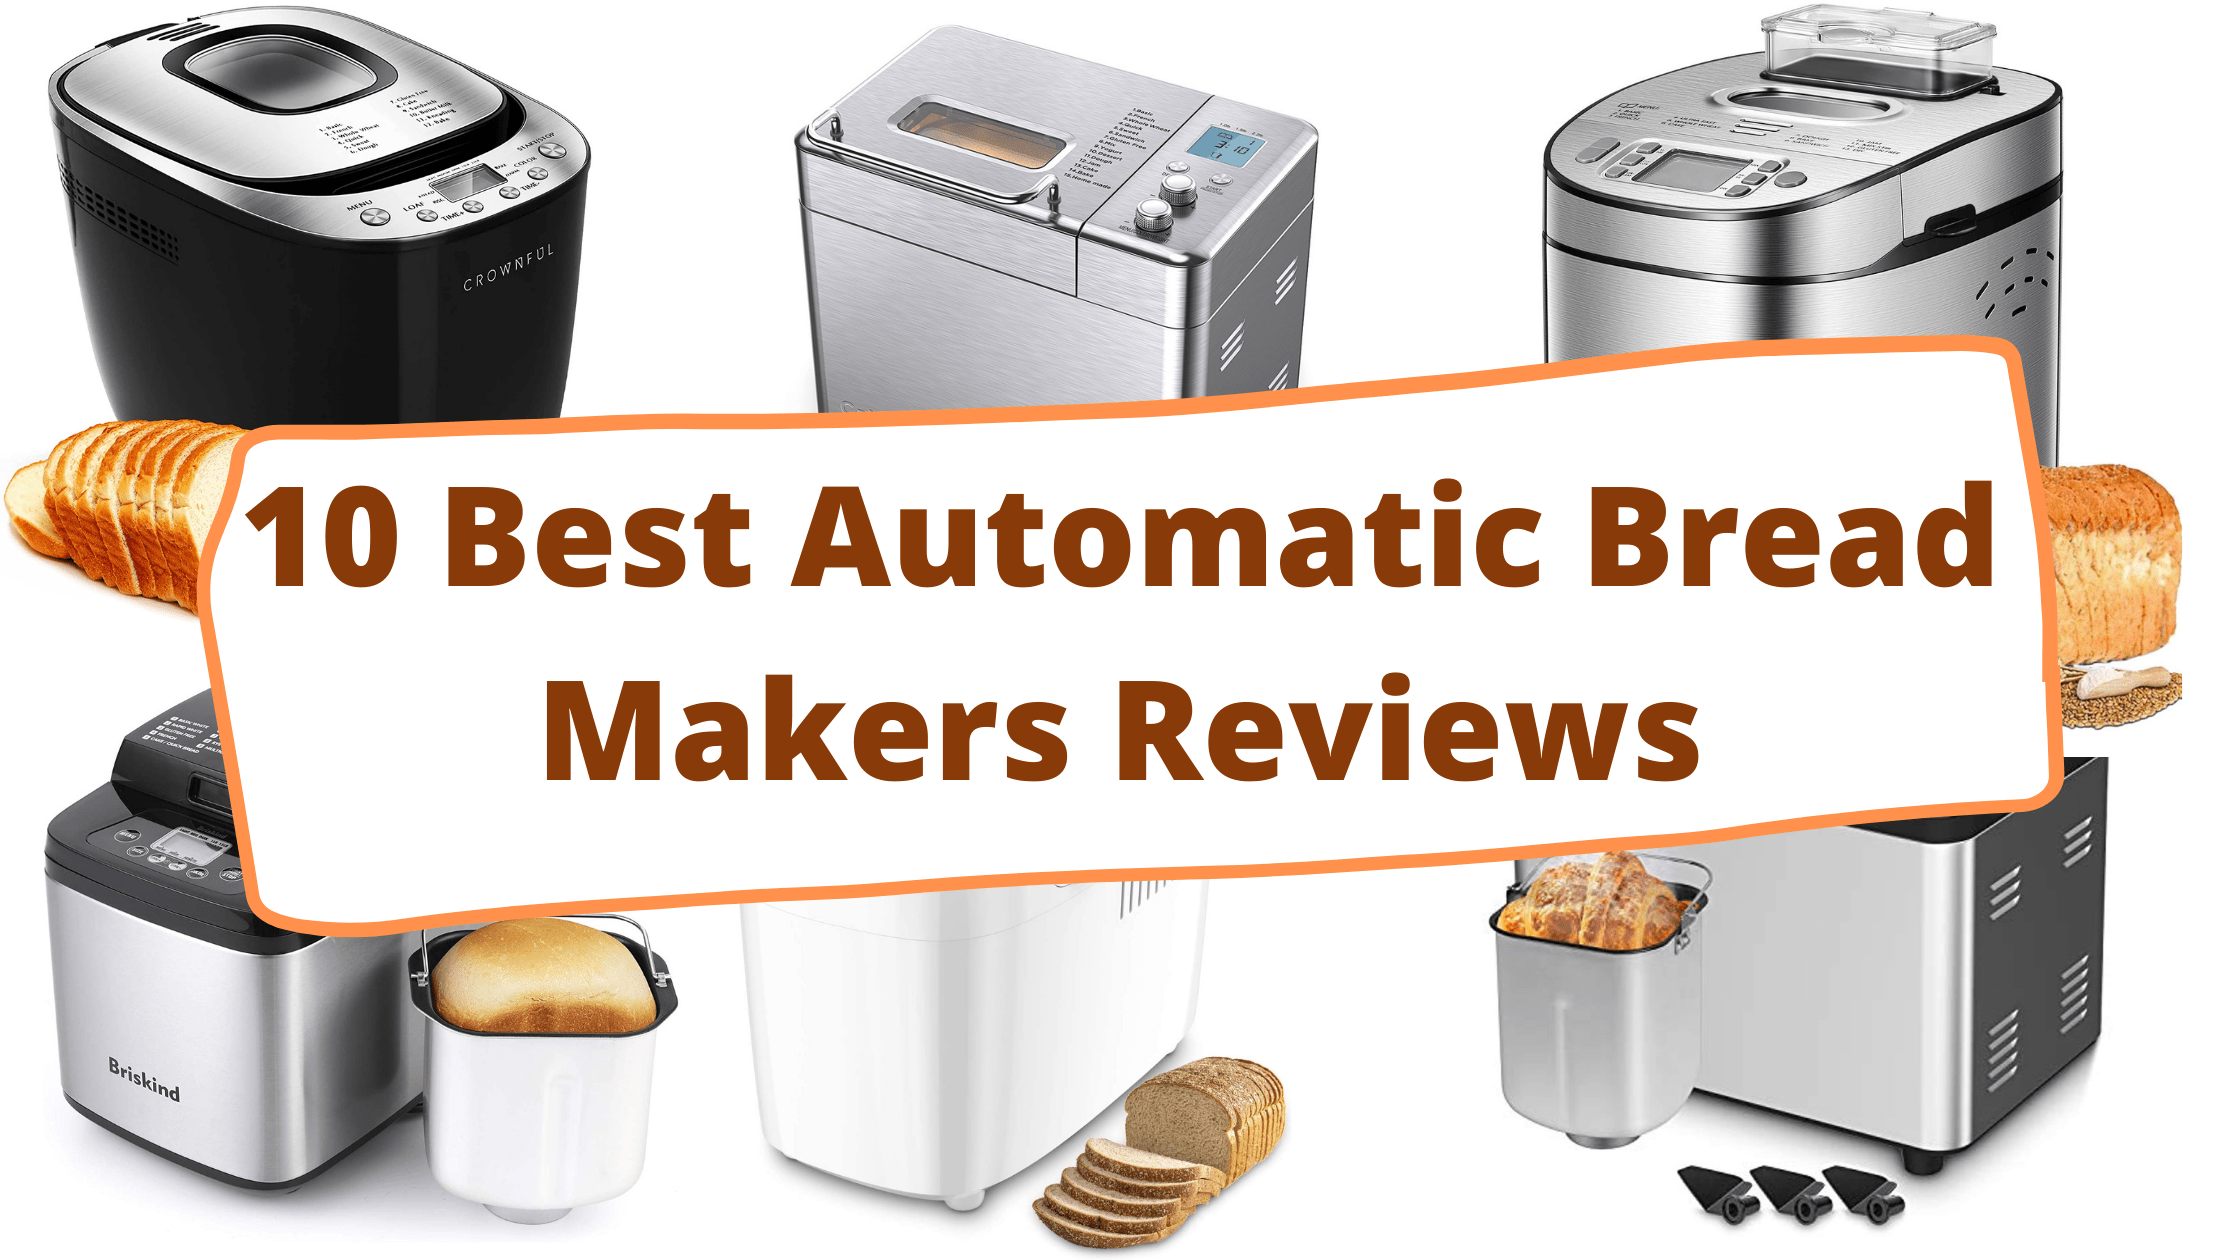 10 Best Automatic Bread Makers Reviews